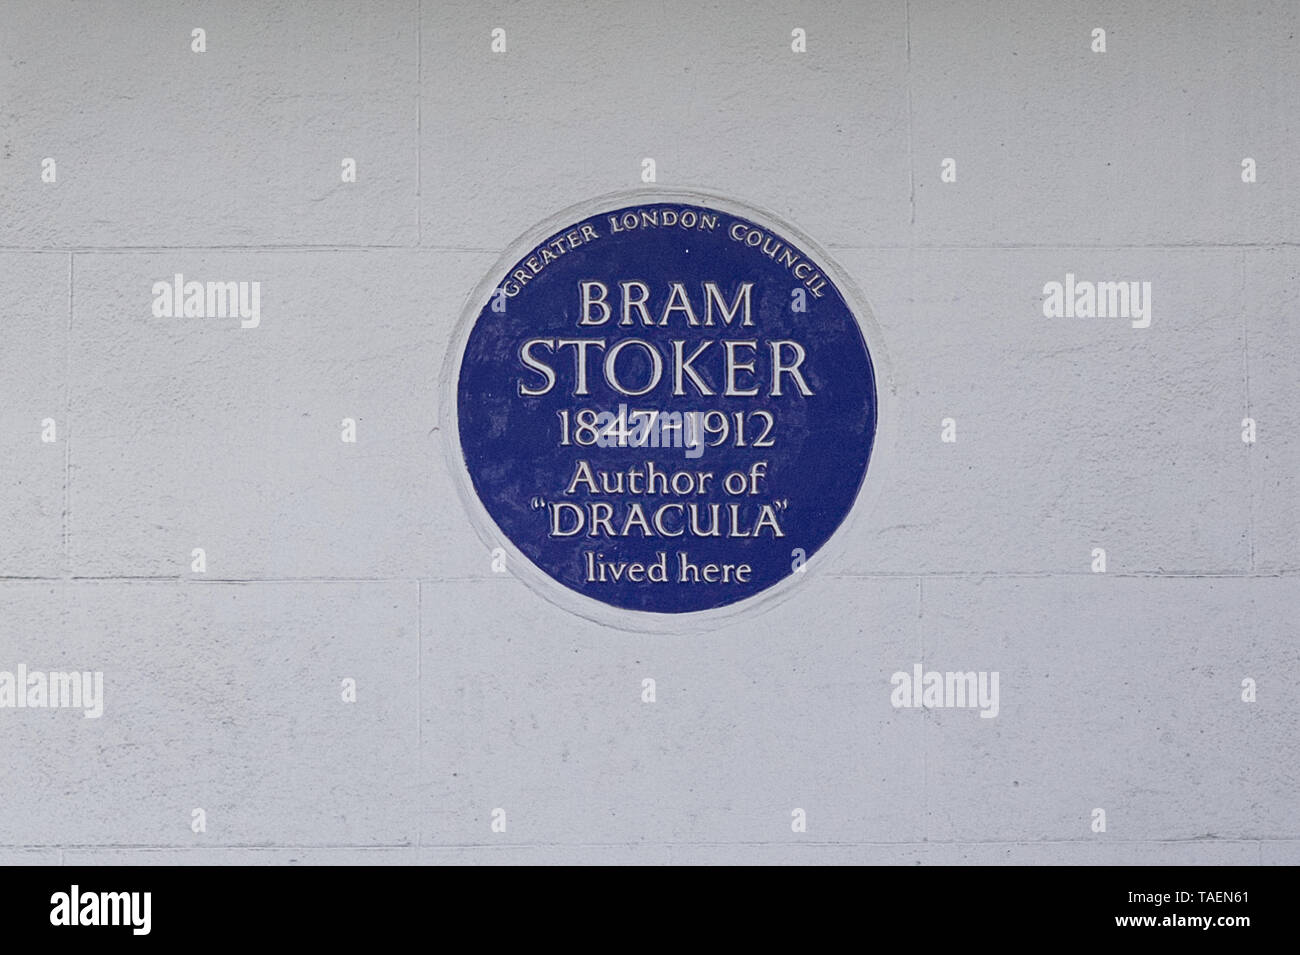 Bram Stoker, Author of Dracula lived here, Greater London Council  blue plaque Stock Photo